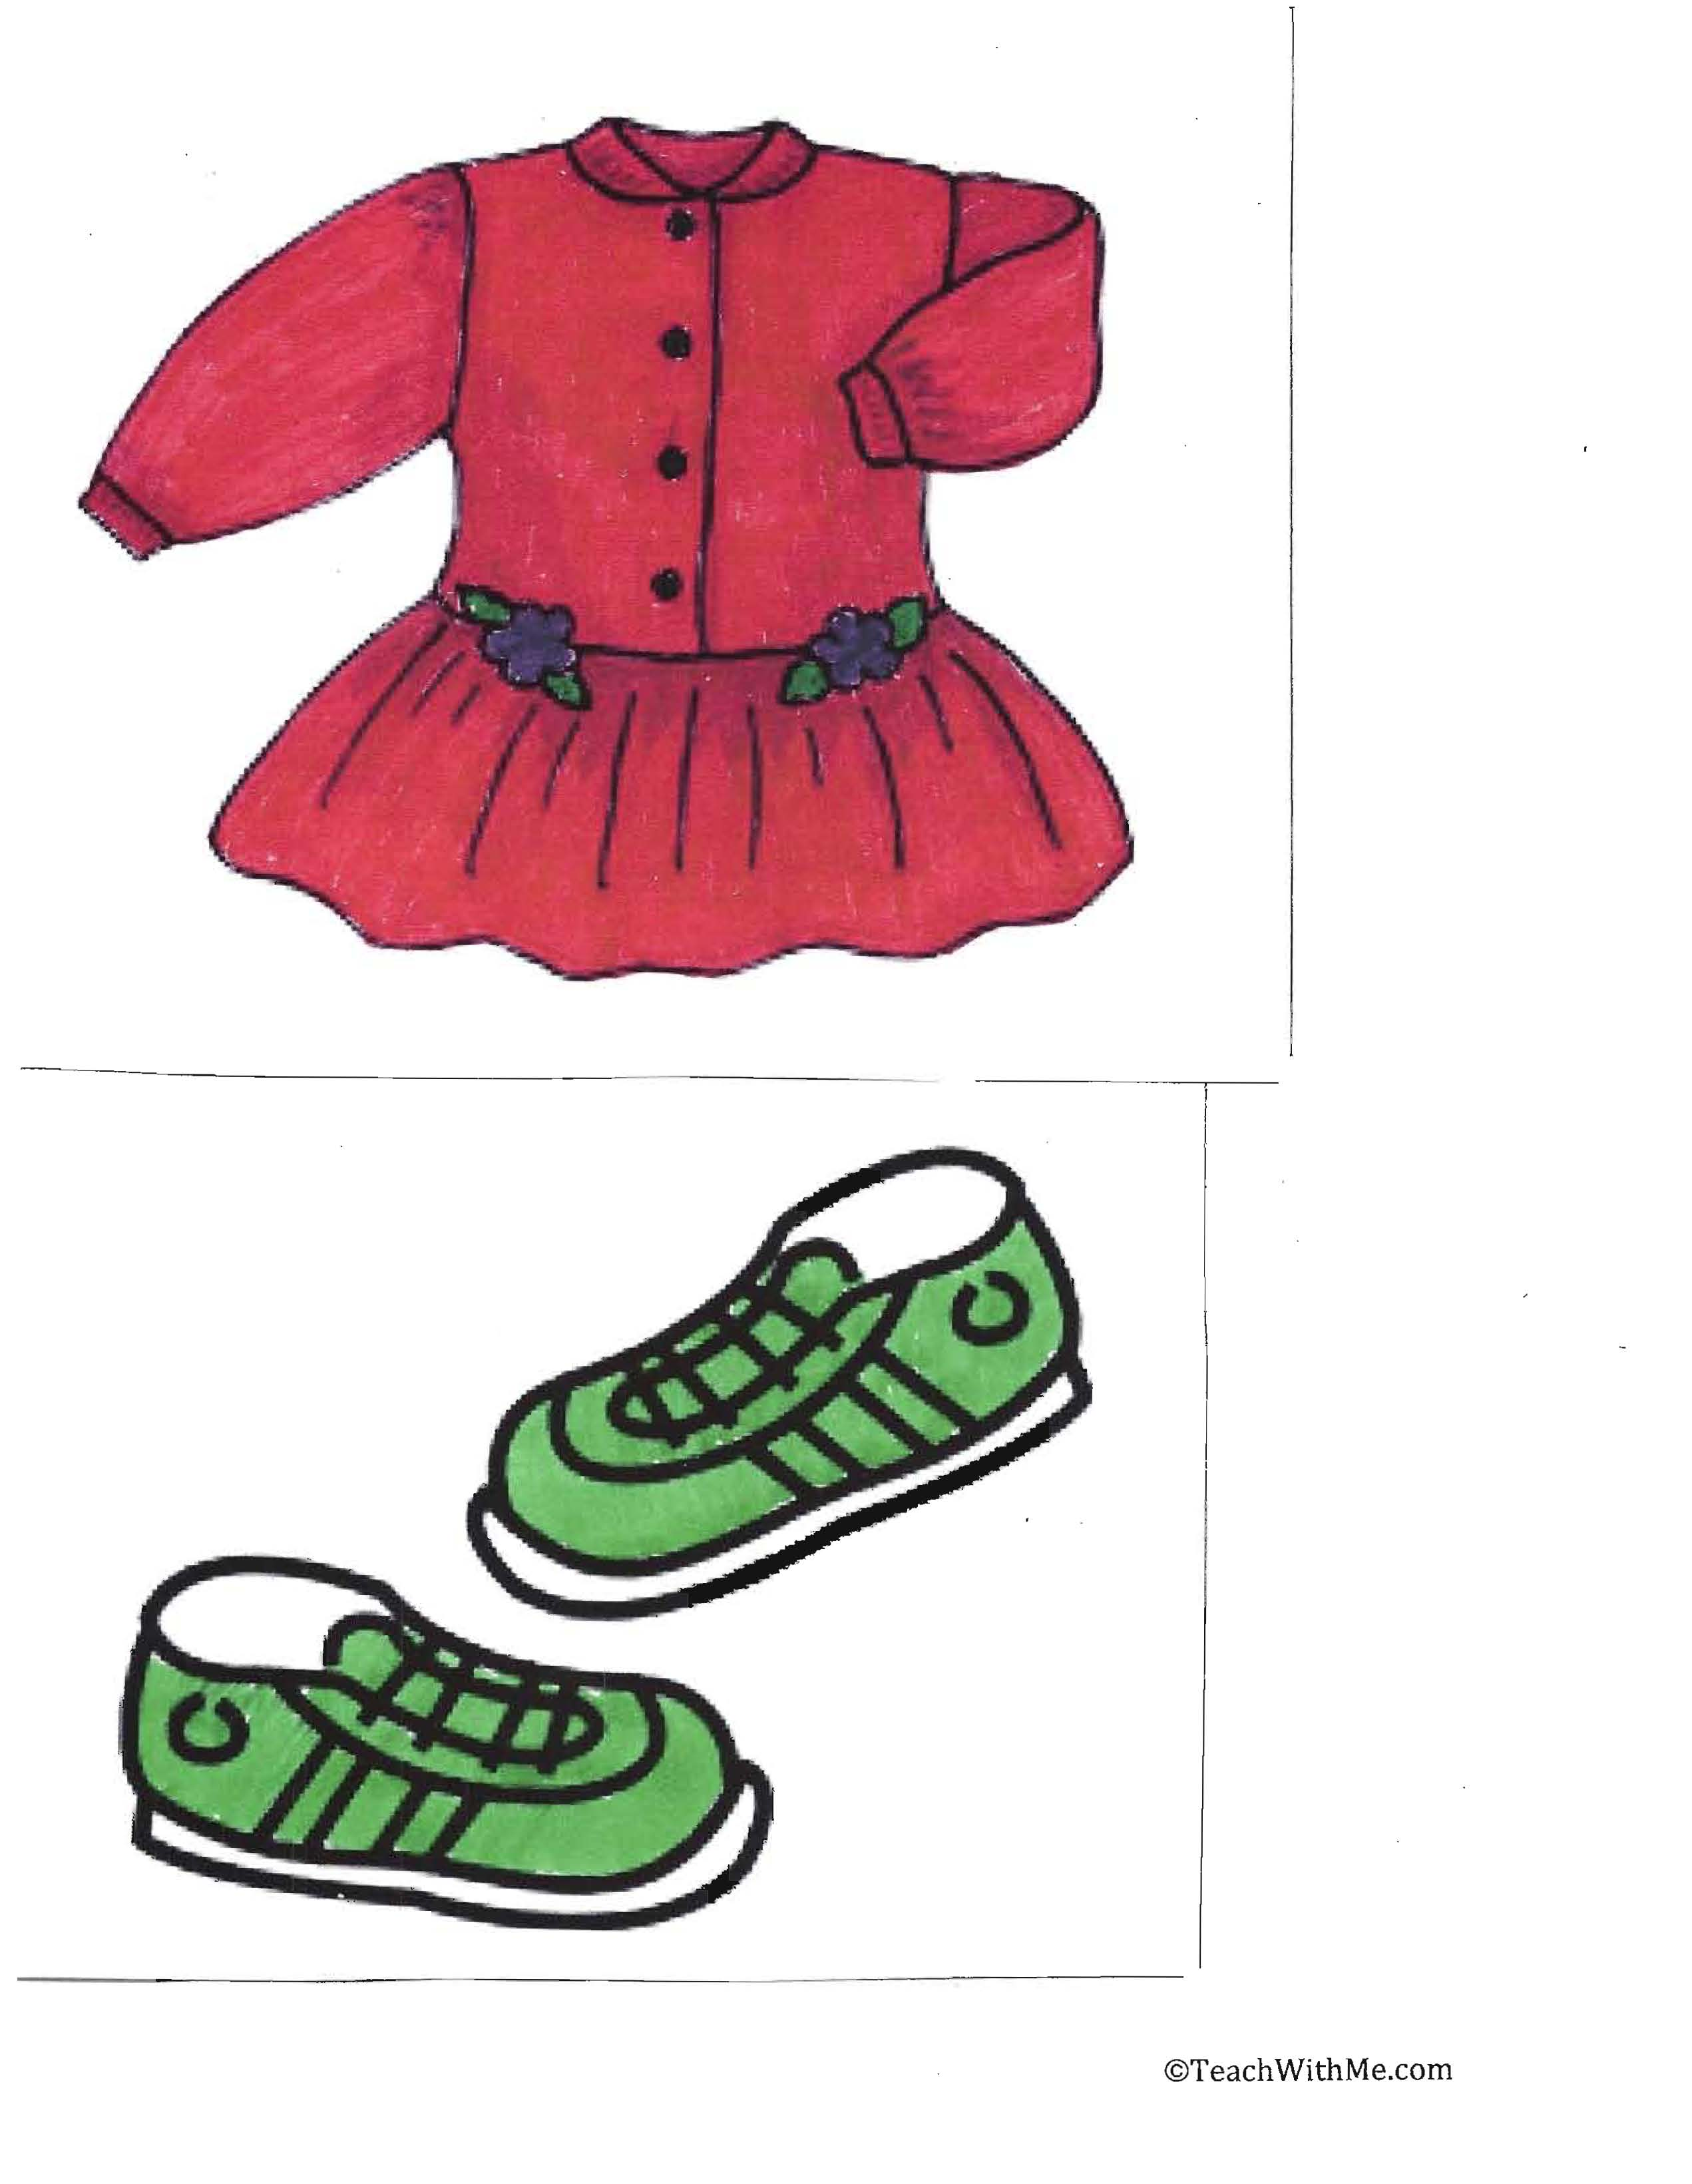 Mary wore a red dress, back to school ideas,